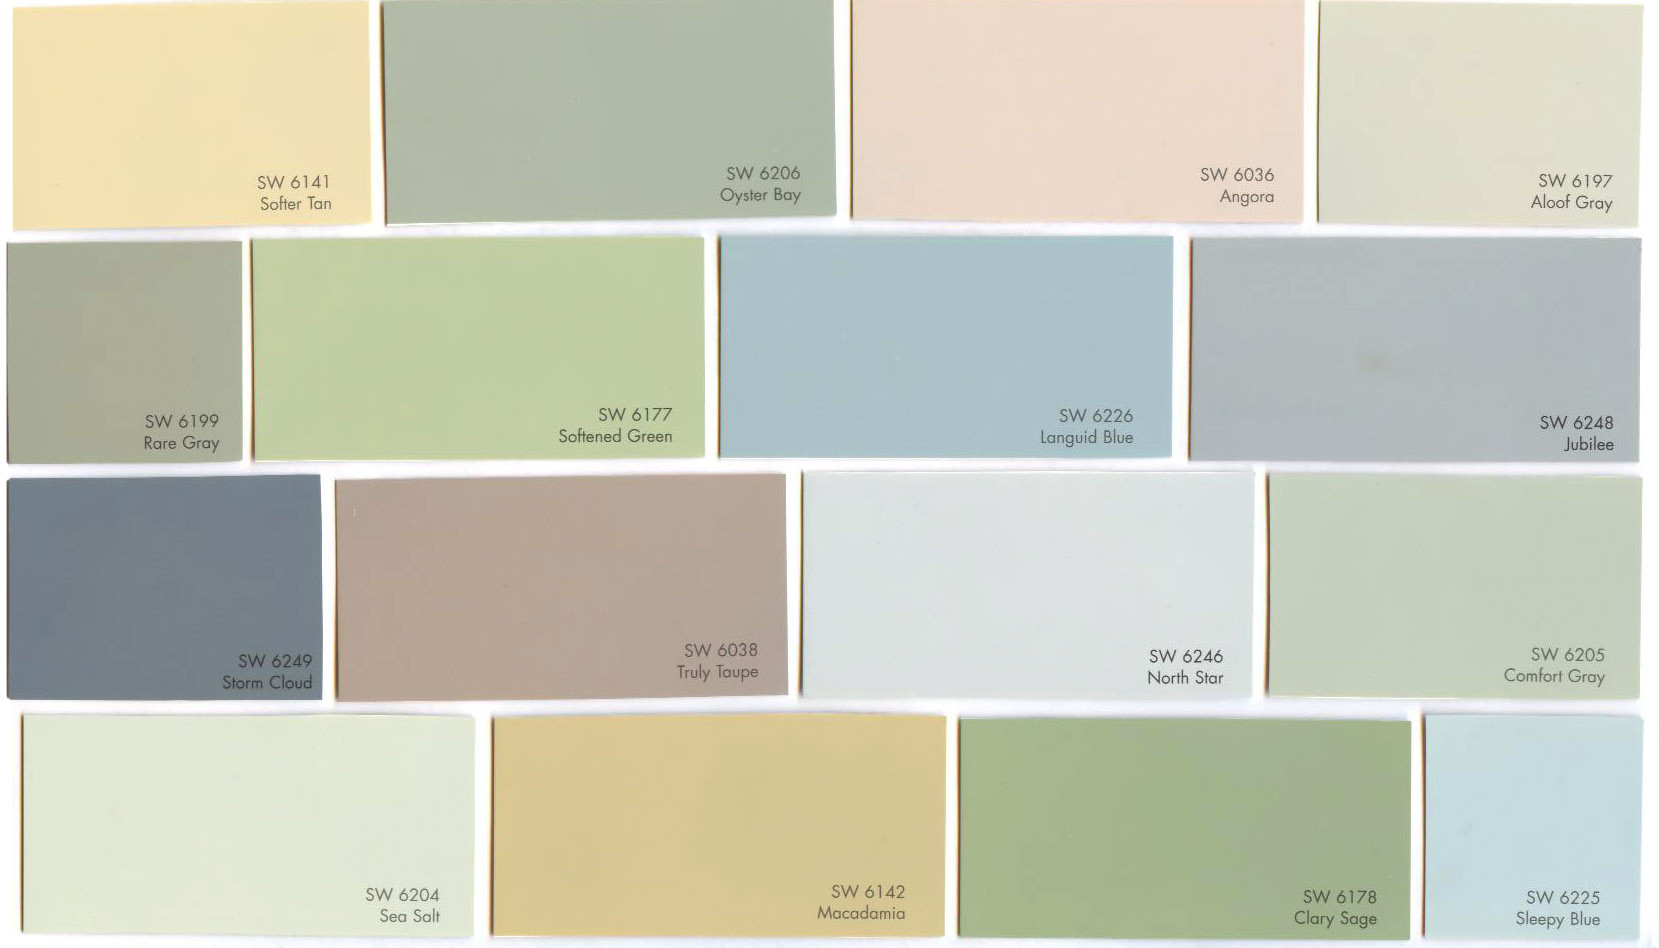 Best ideas about Sherwin-Williams Paint Colors . Save or Pin sherwin williams interior paint colors 2017 Grasscloth Now.